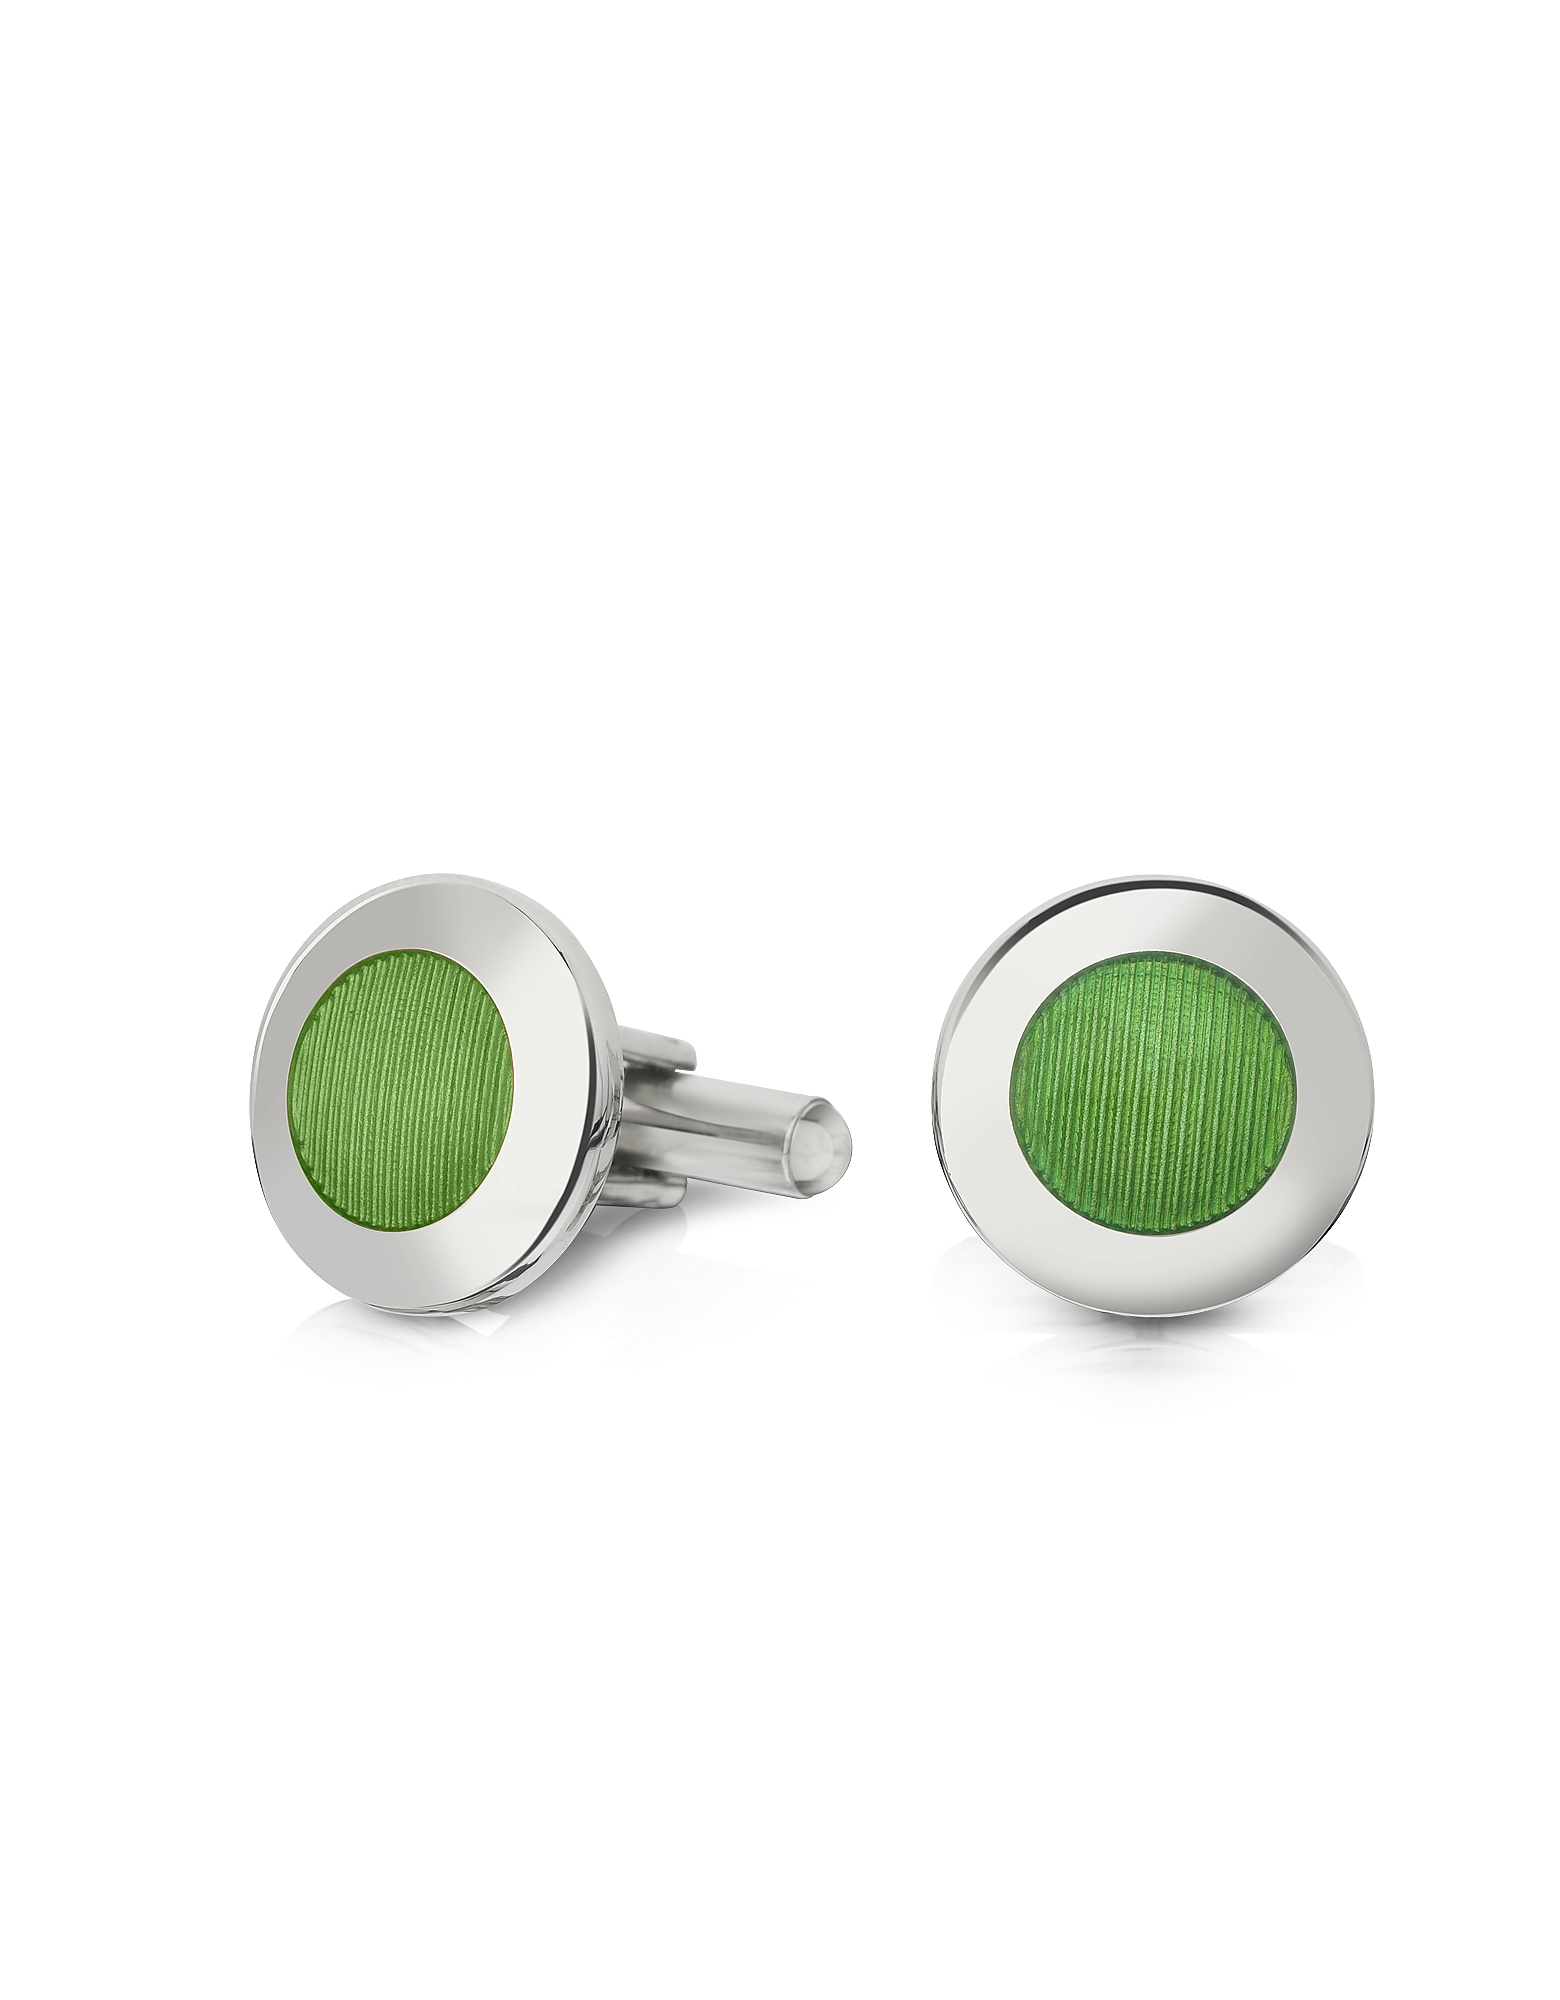 Forzieri Designer Cufflinks, Dandy - Round Striped Enamel Cufflinks